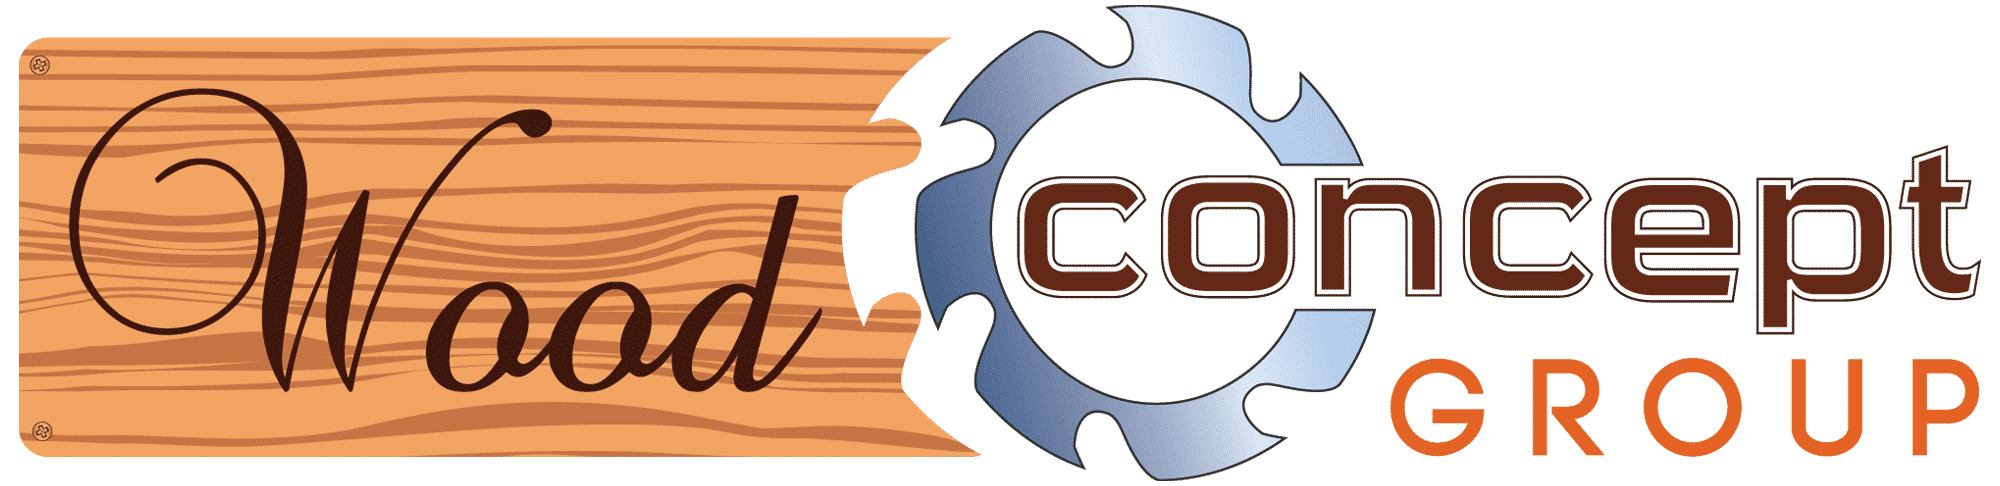 Woodconcept Group Logo